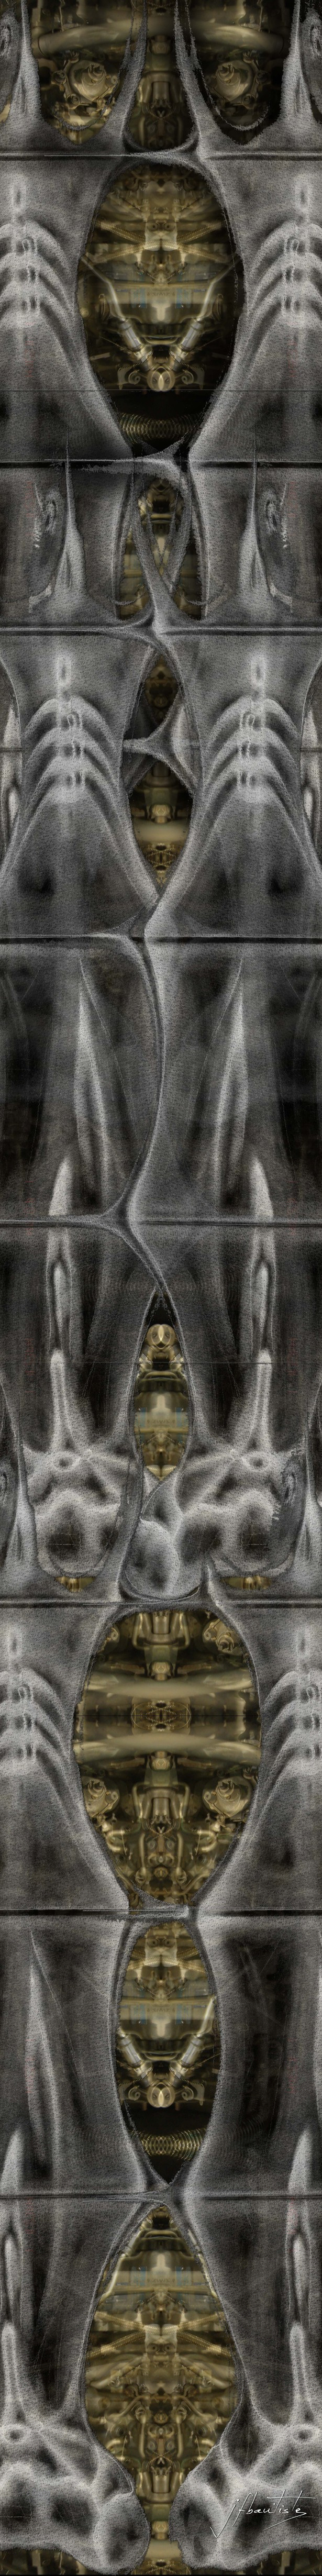 X-Ray of a highrise building